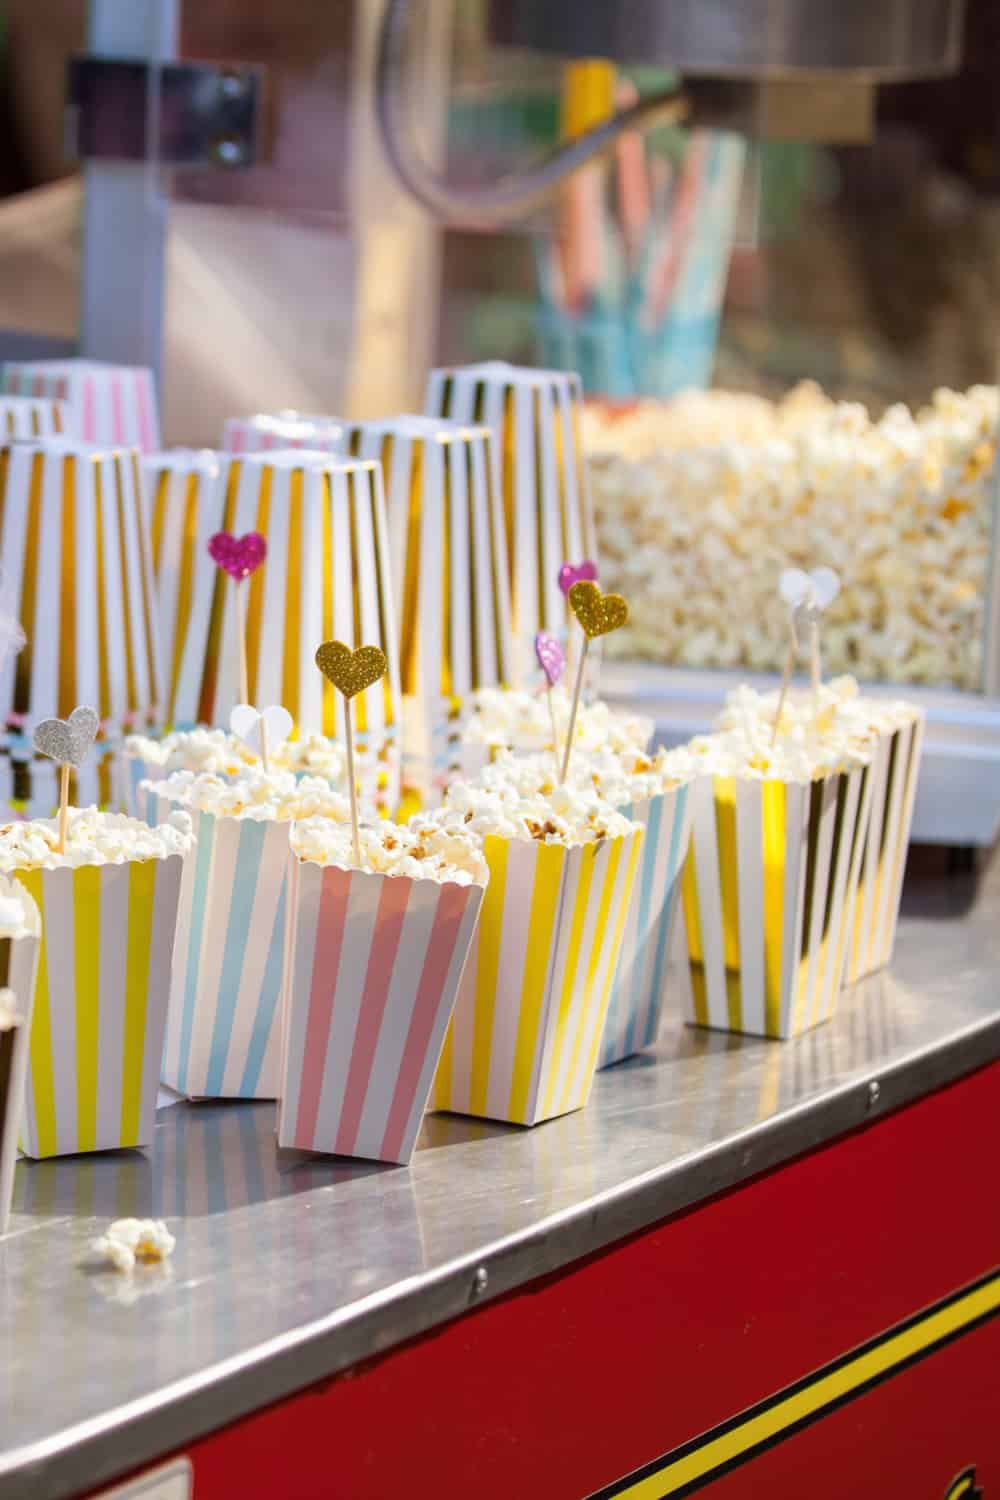 The Risk of Consuming Expired Popcorn